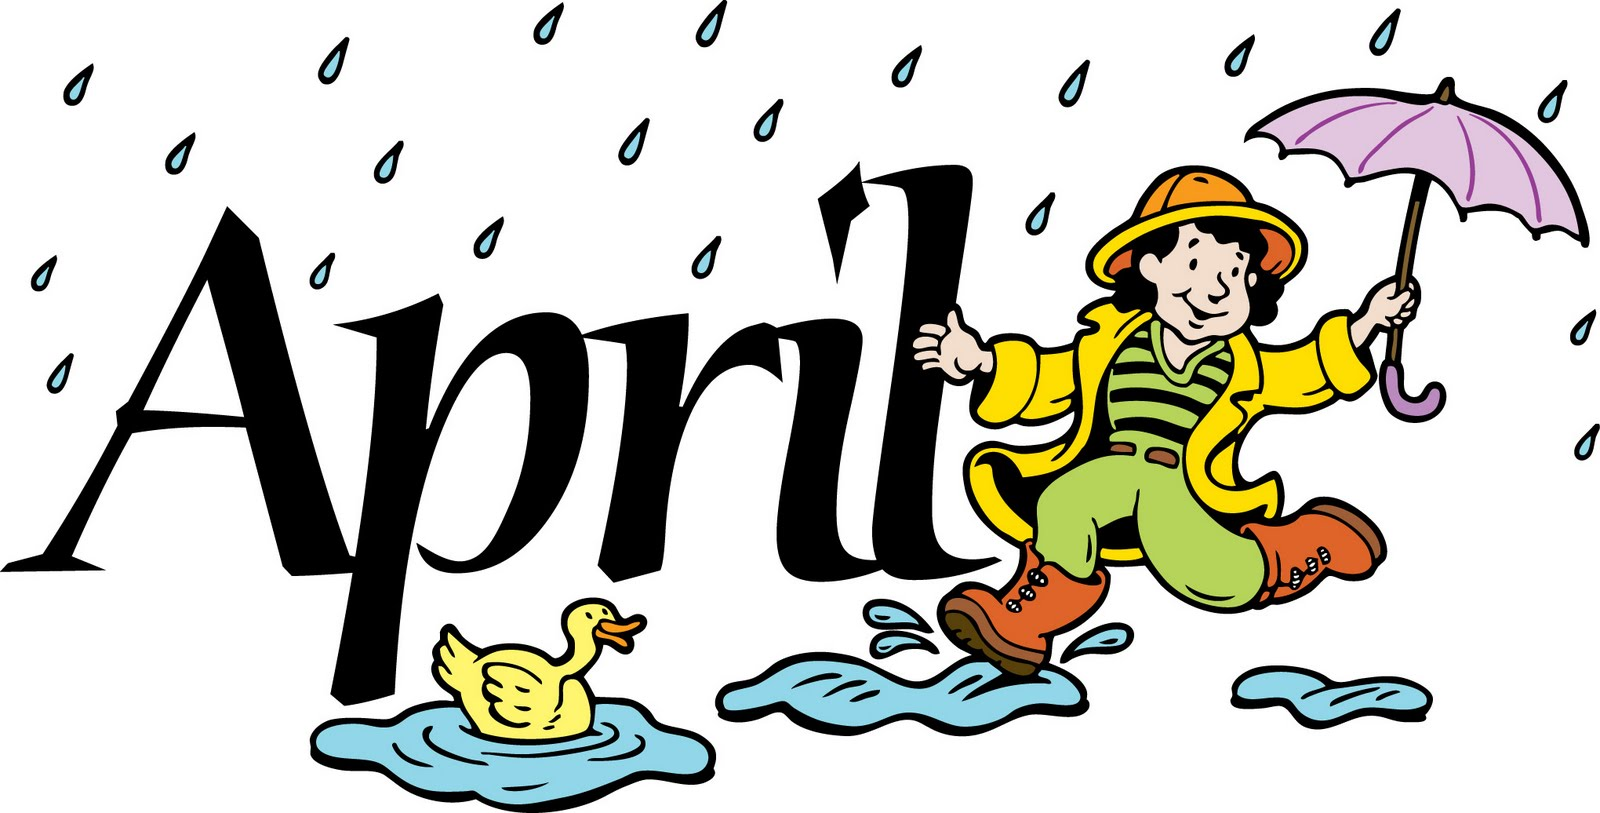 Free month of april clipart. Cliparts download clip art